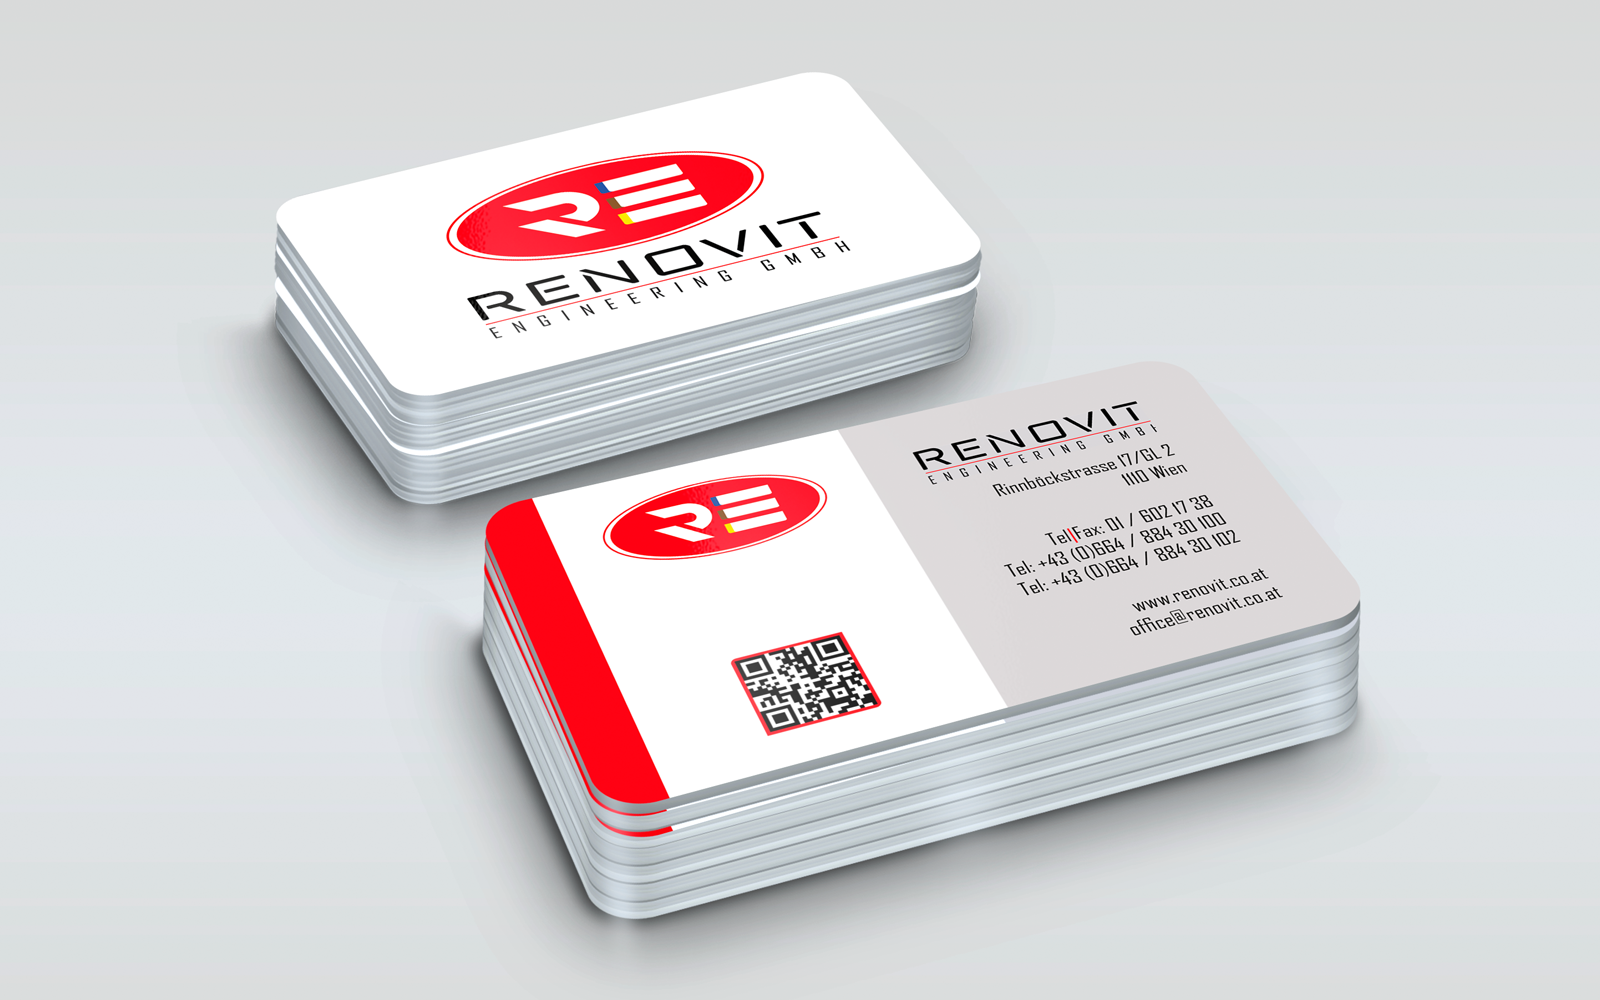 Renovit Engineering GmbH Business Card